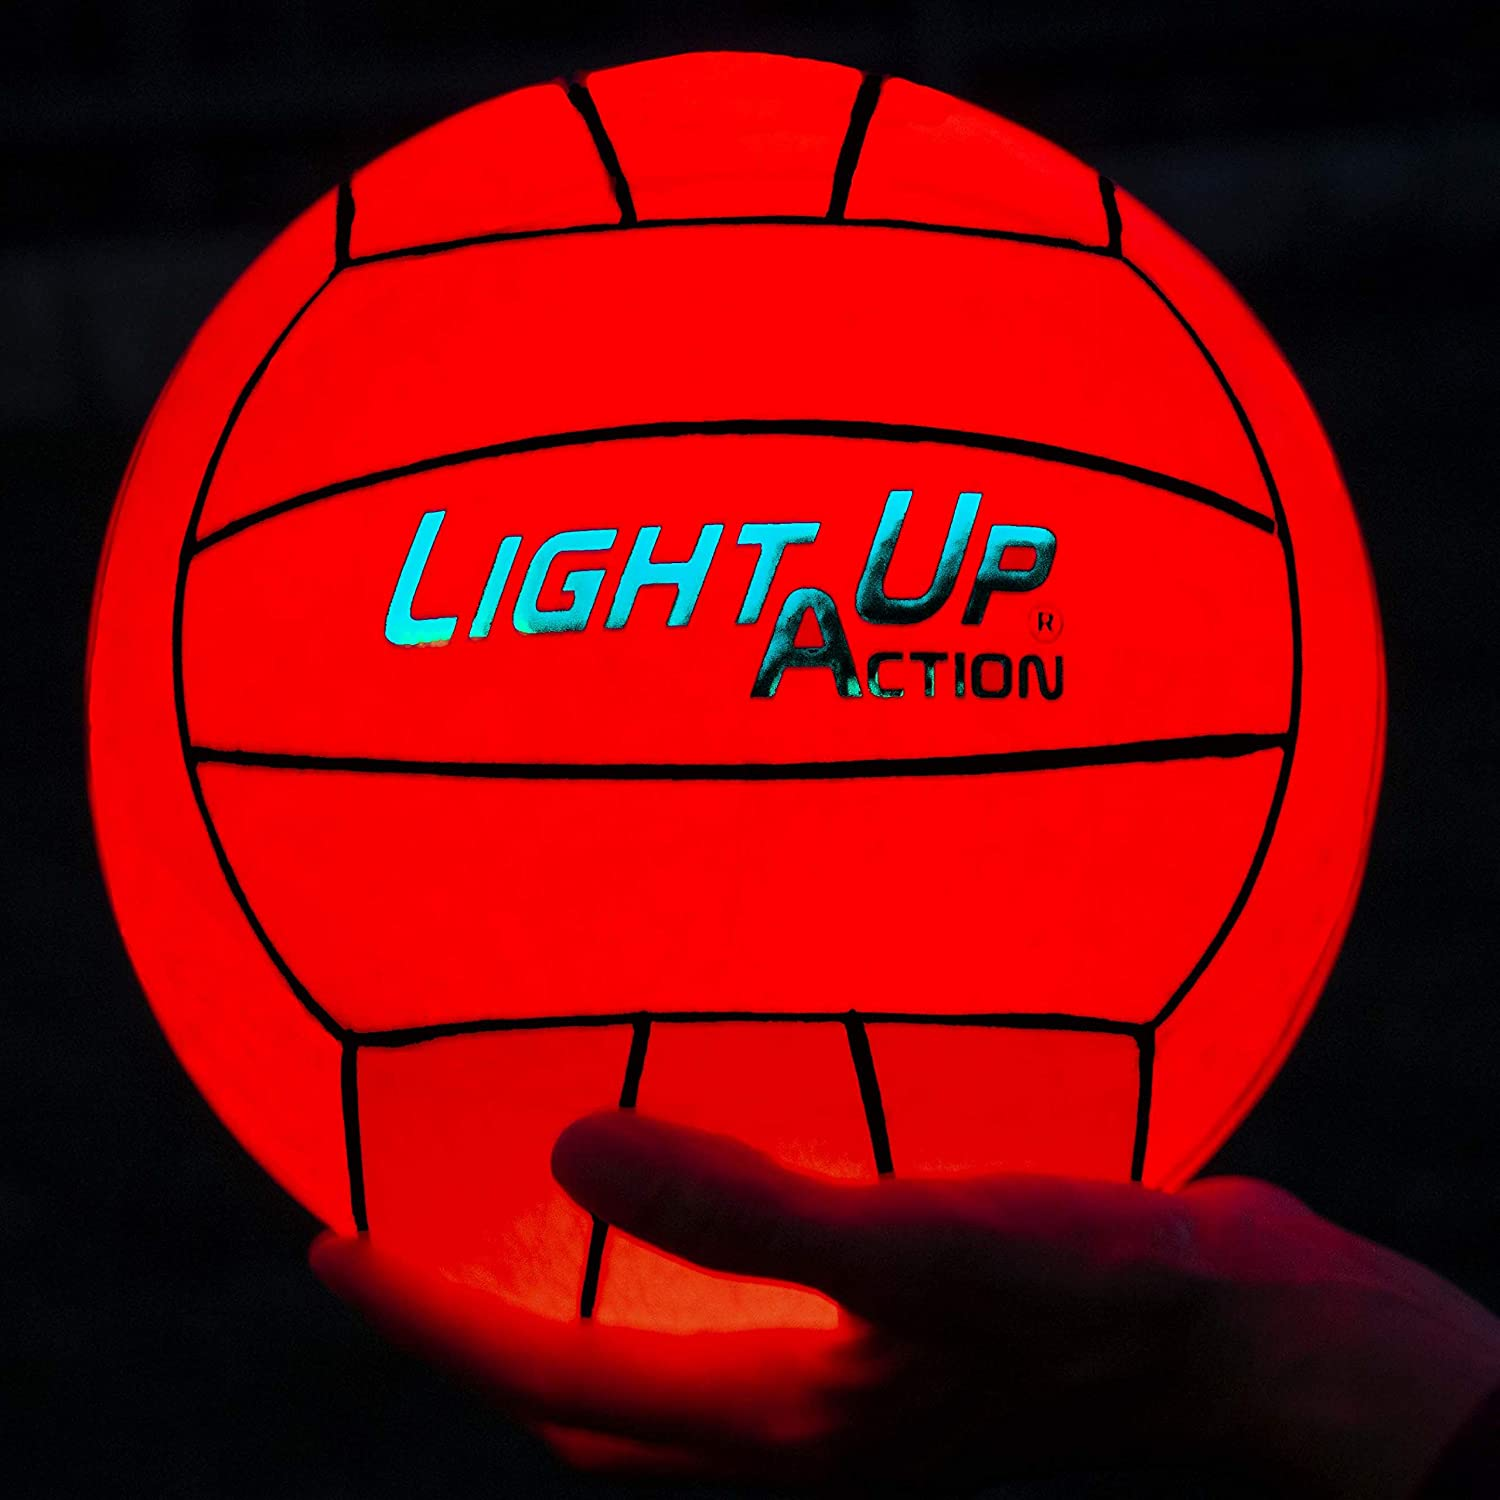 Light UpアクションデュアルLEDバレーボールVolleyball is brighter than any other 。 B07FWCNP8B